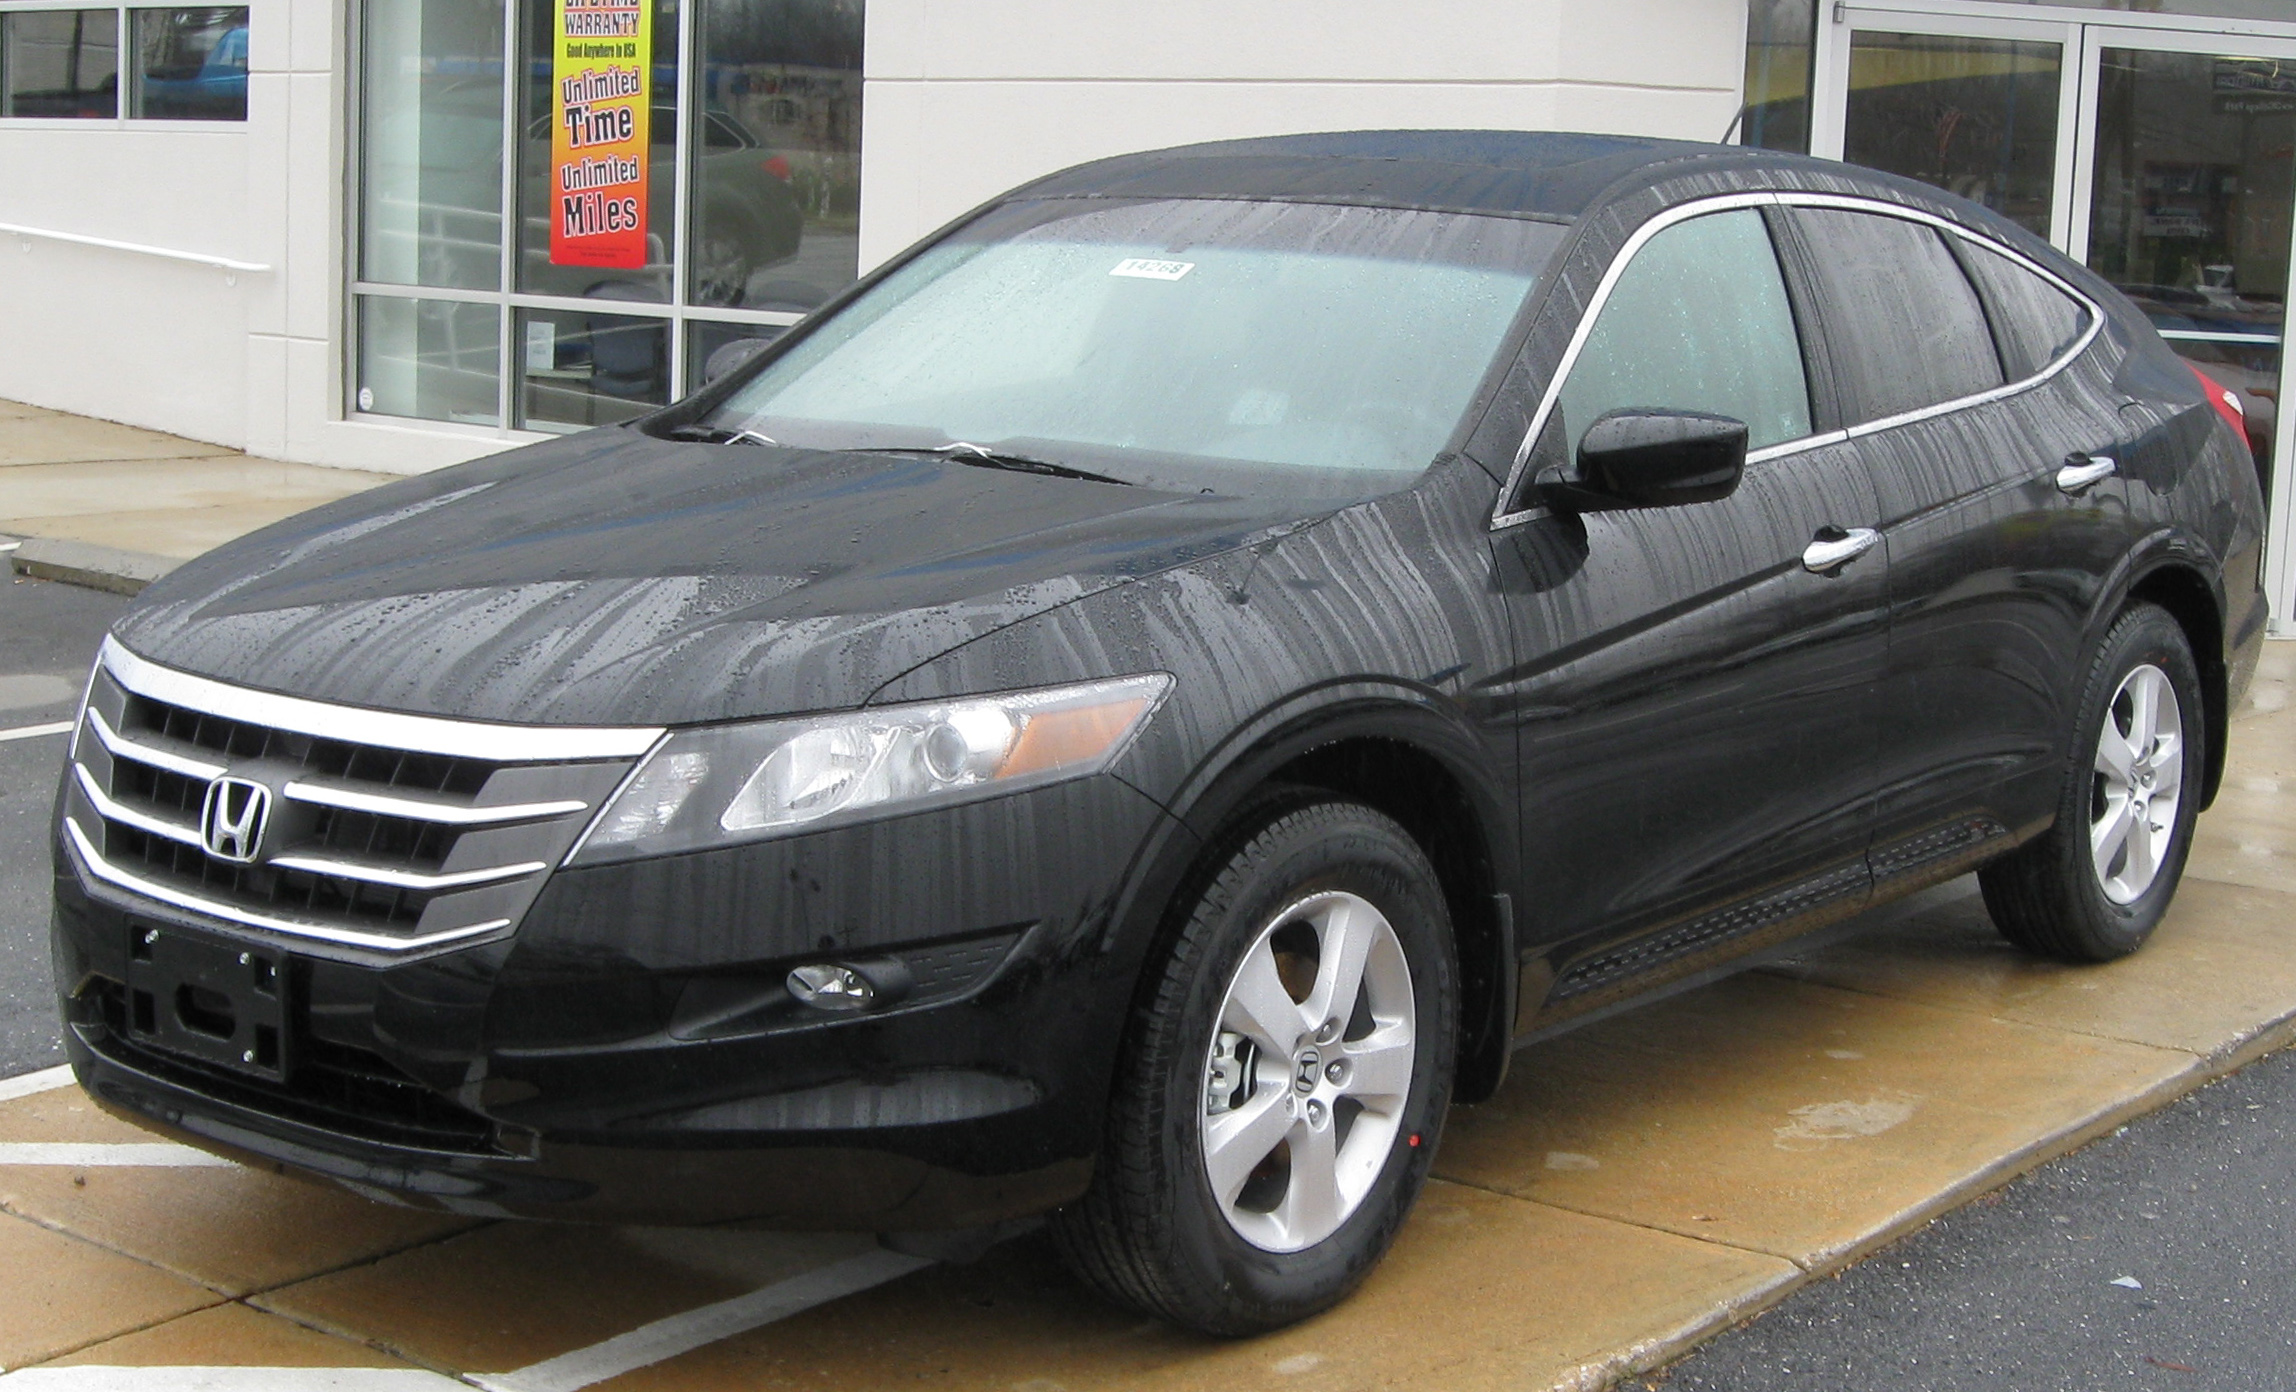 Description 2010 Honda Accord Crosstour EX -- 11-25-2009.jpg